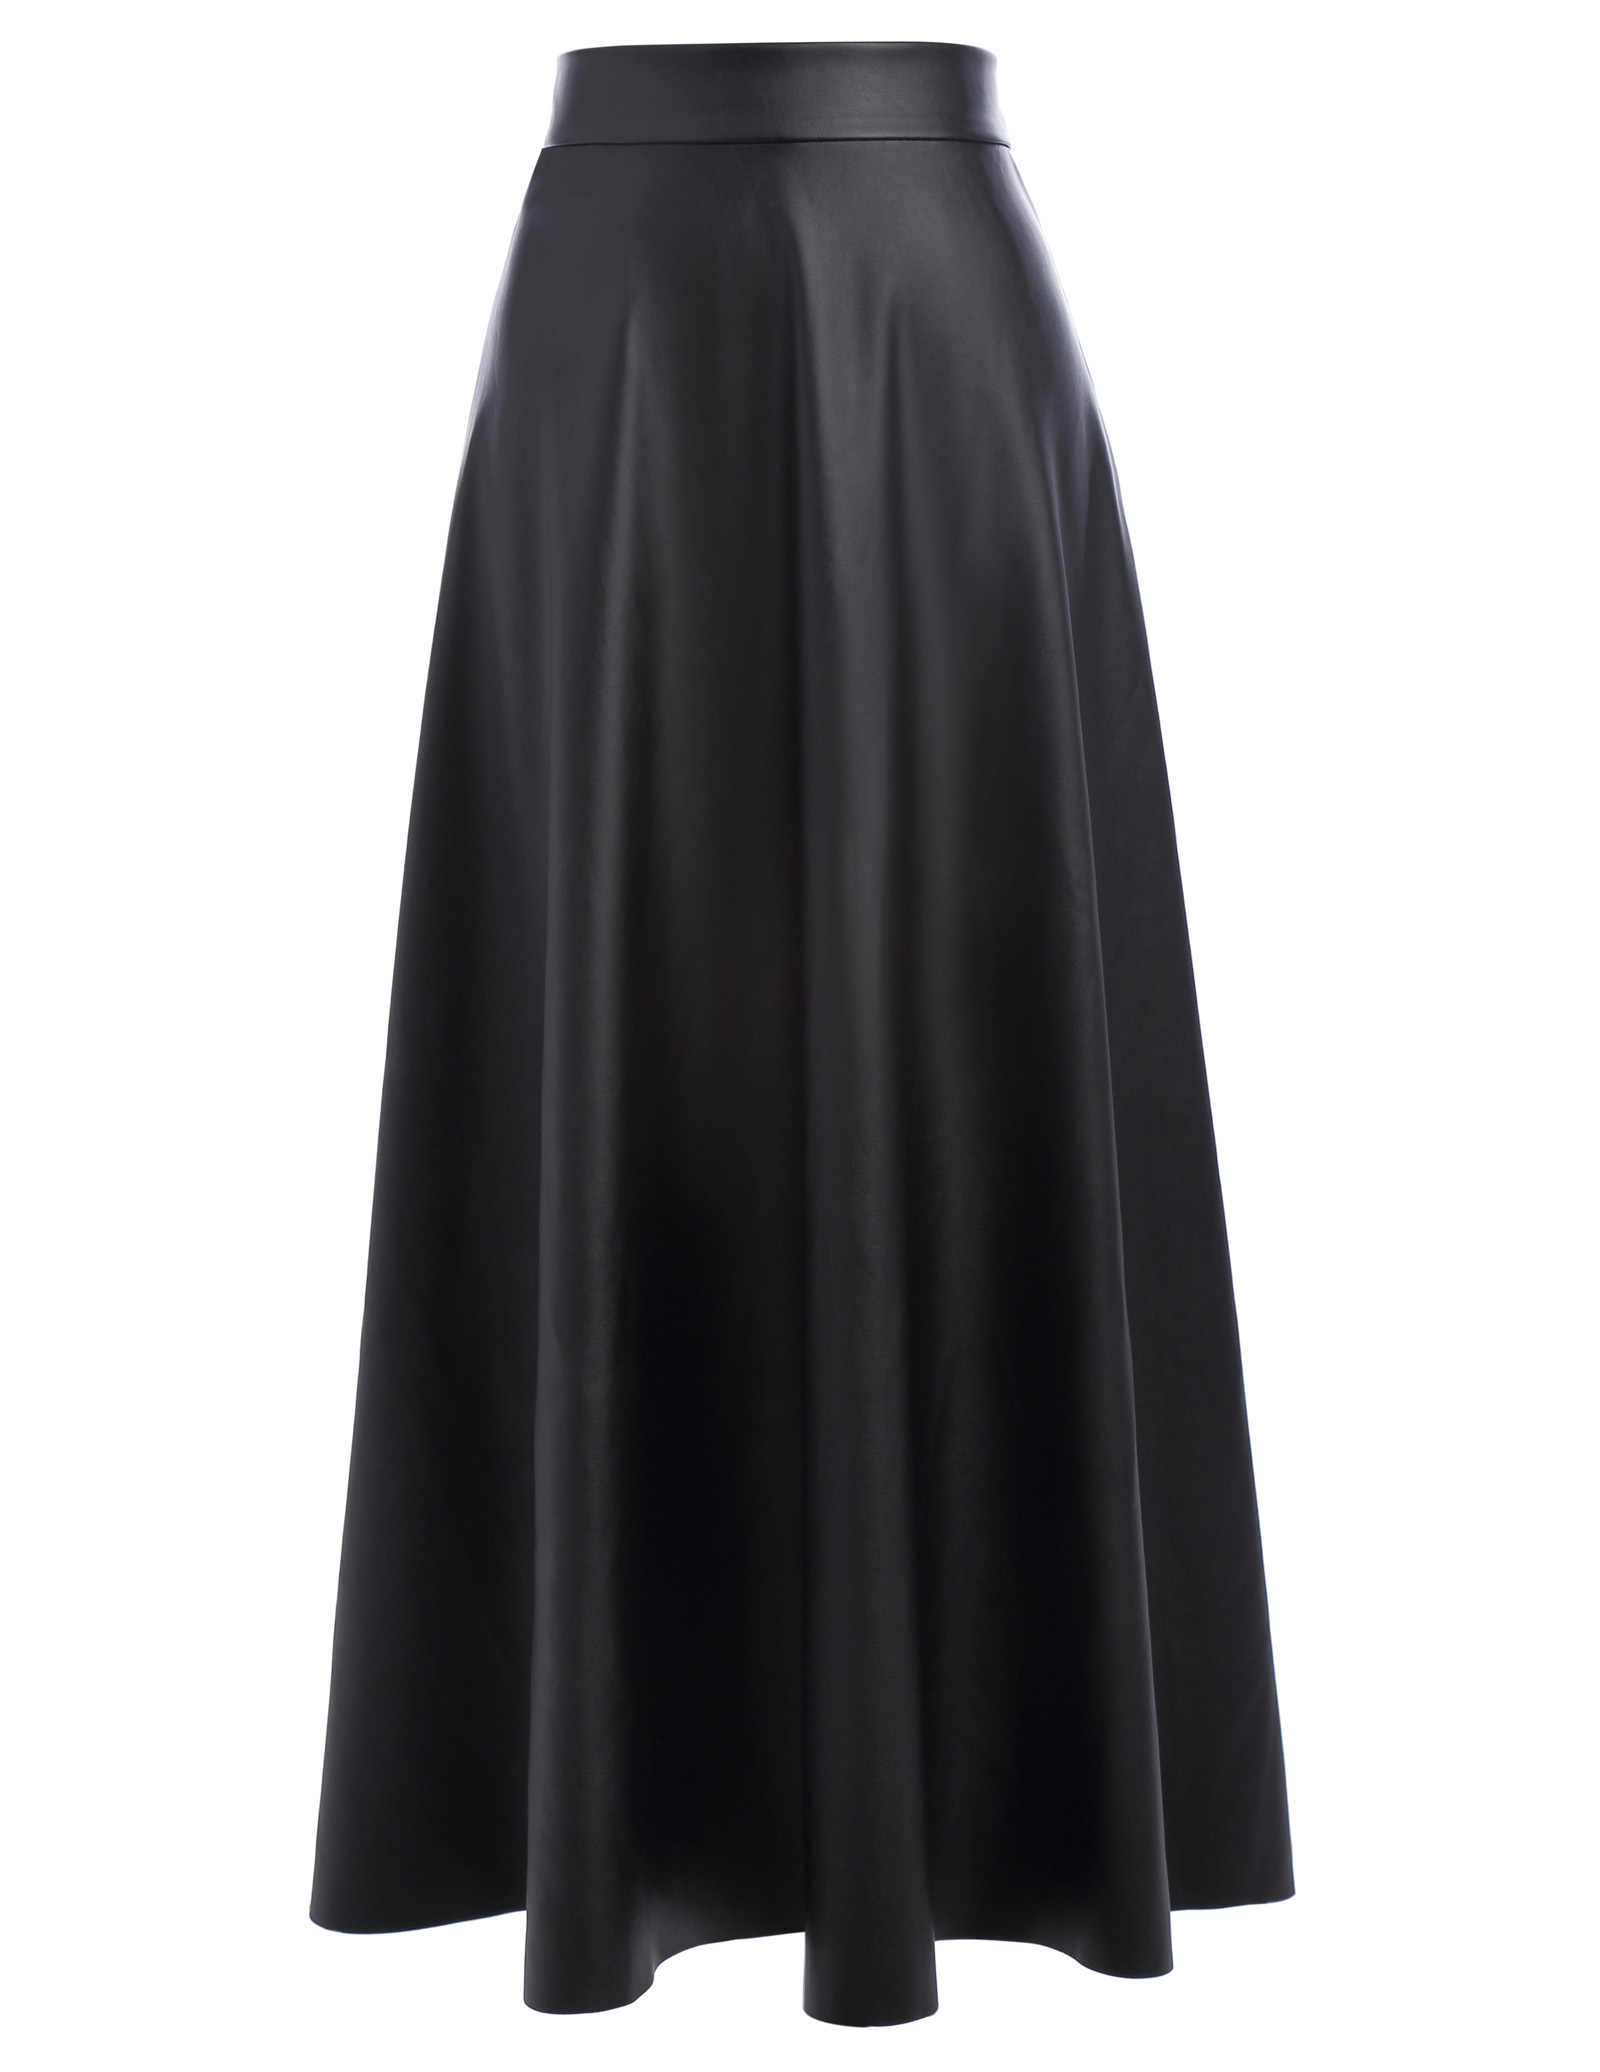 8b77d5fb68 Autumn black skirts womens vintage high waist slim long maxi skirt lolita  leather flared swing A